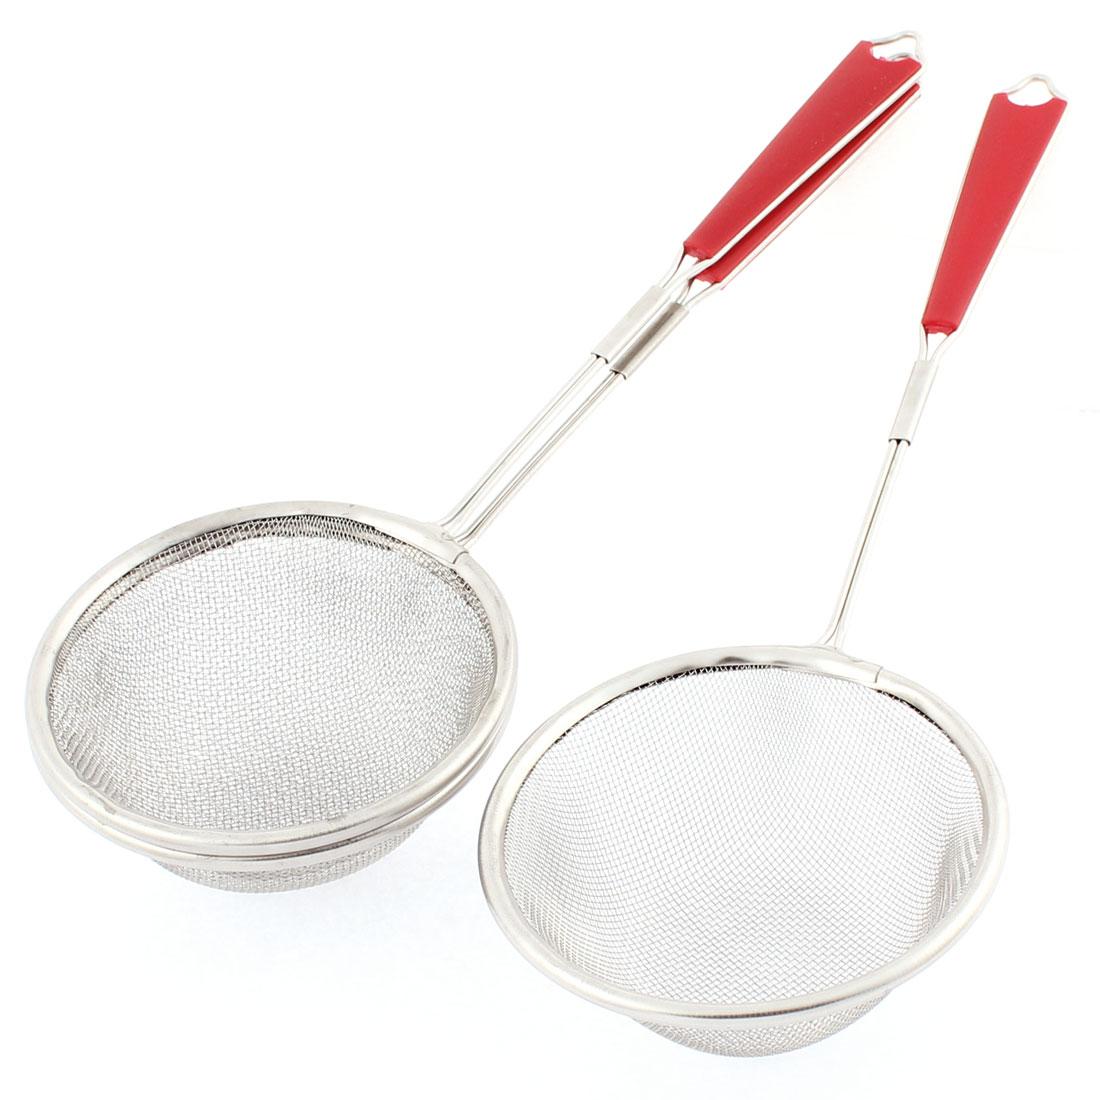 Household Stainless Steel Mesh Strainer Ladle Sifter 85mm Dia 3 Pcs